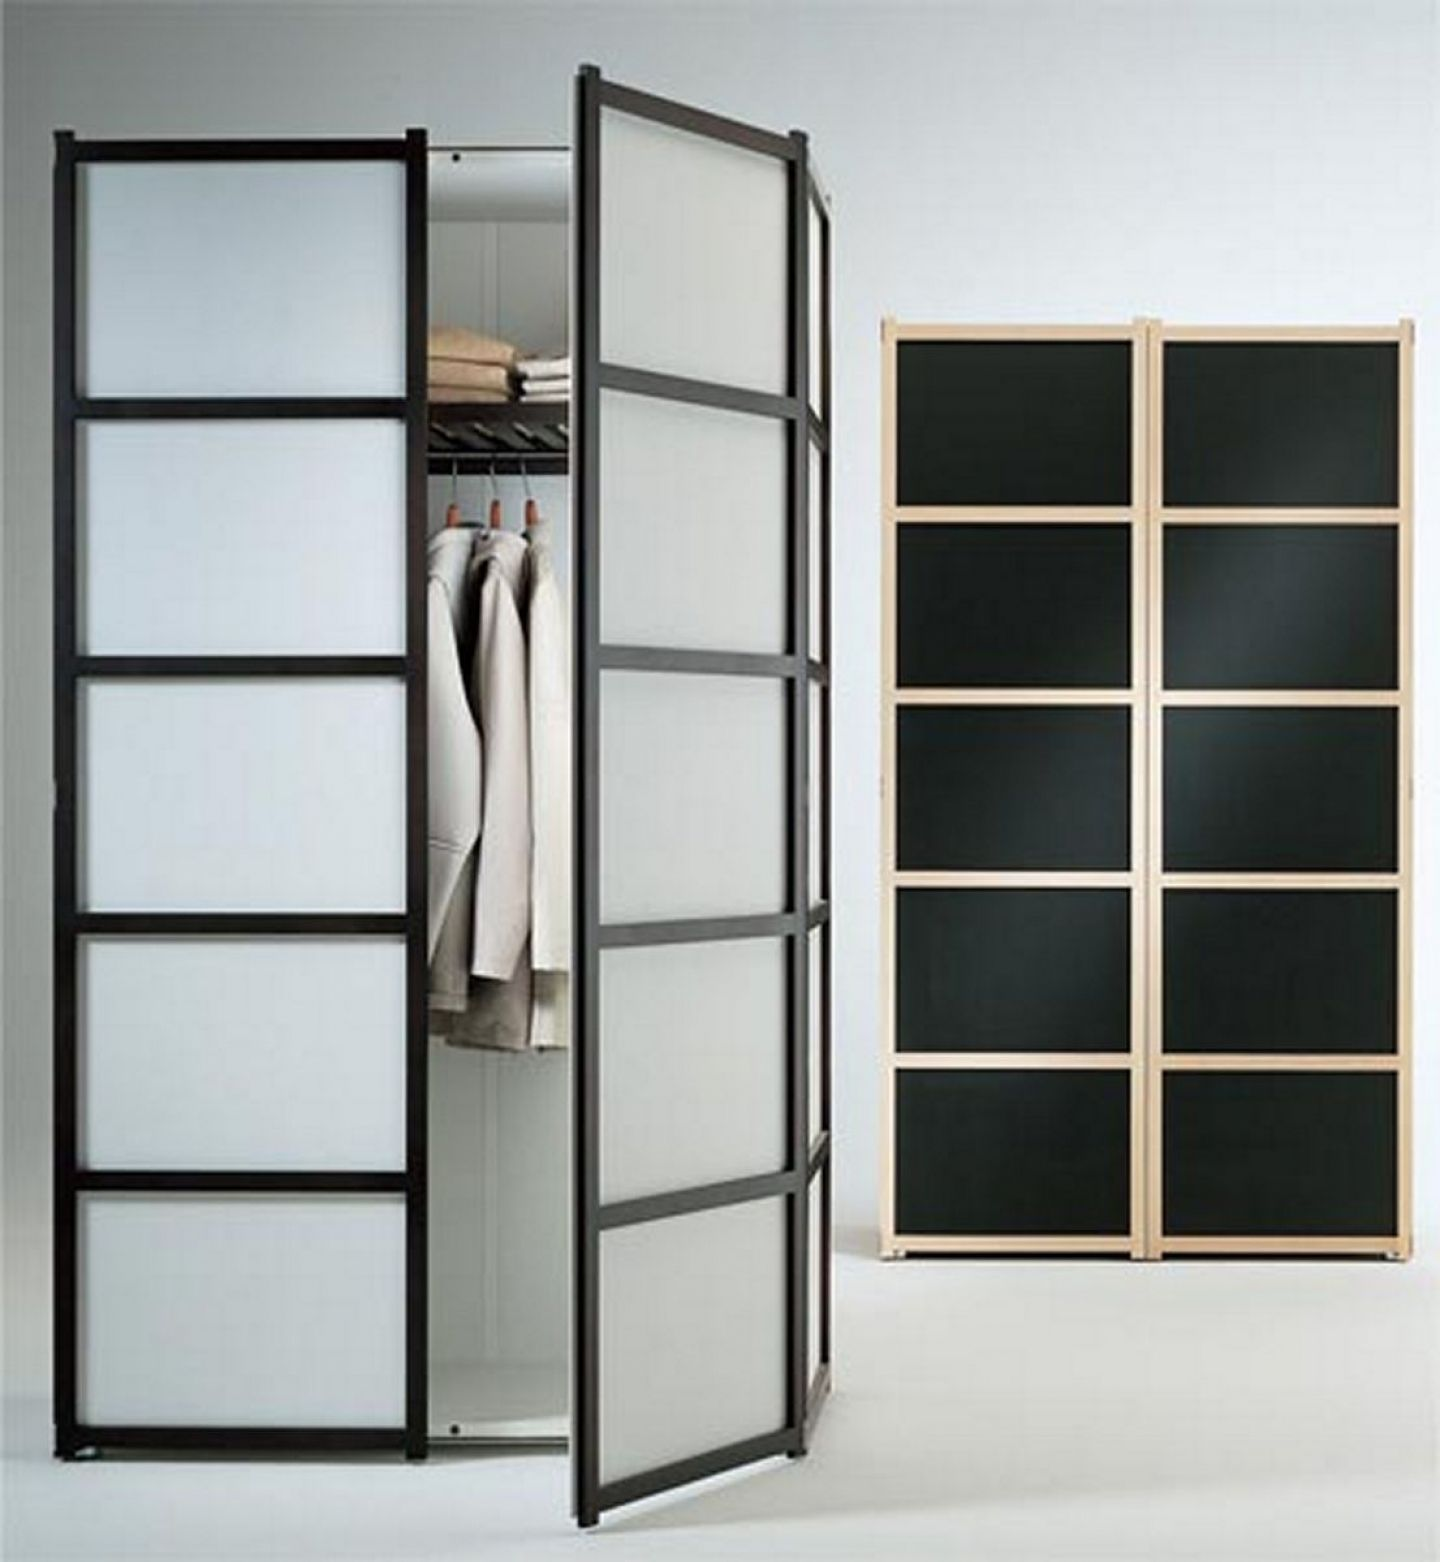 Fascinating frozen glass double swing door ikea wardrobe for fascinating frozen glass double swing door ikea wardrobe for clothes organizers in white room furnishing ideas eventelaan Gallery